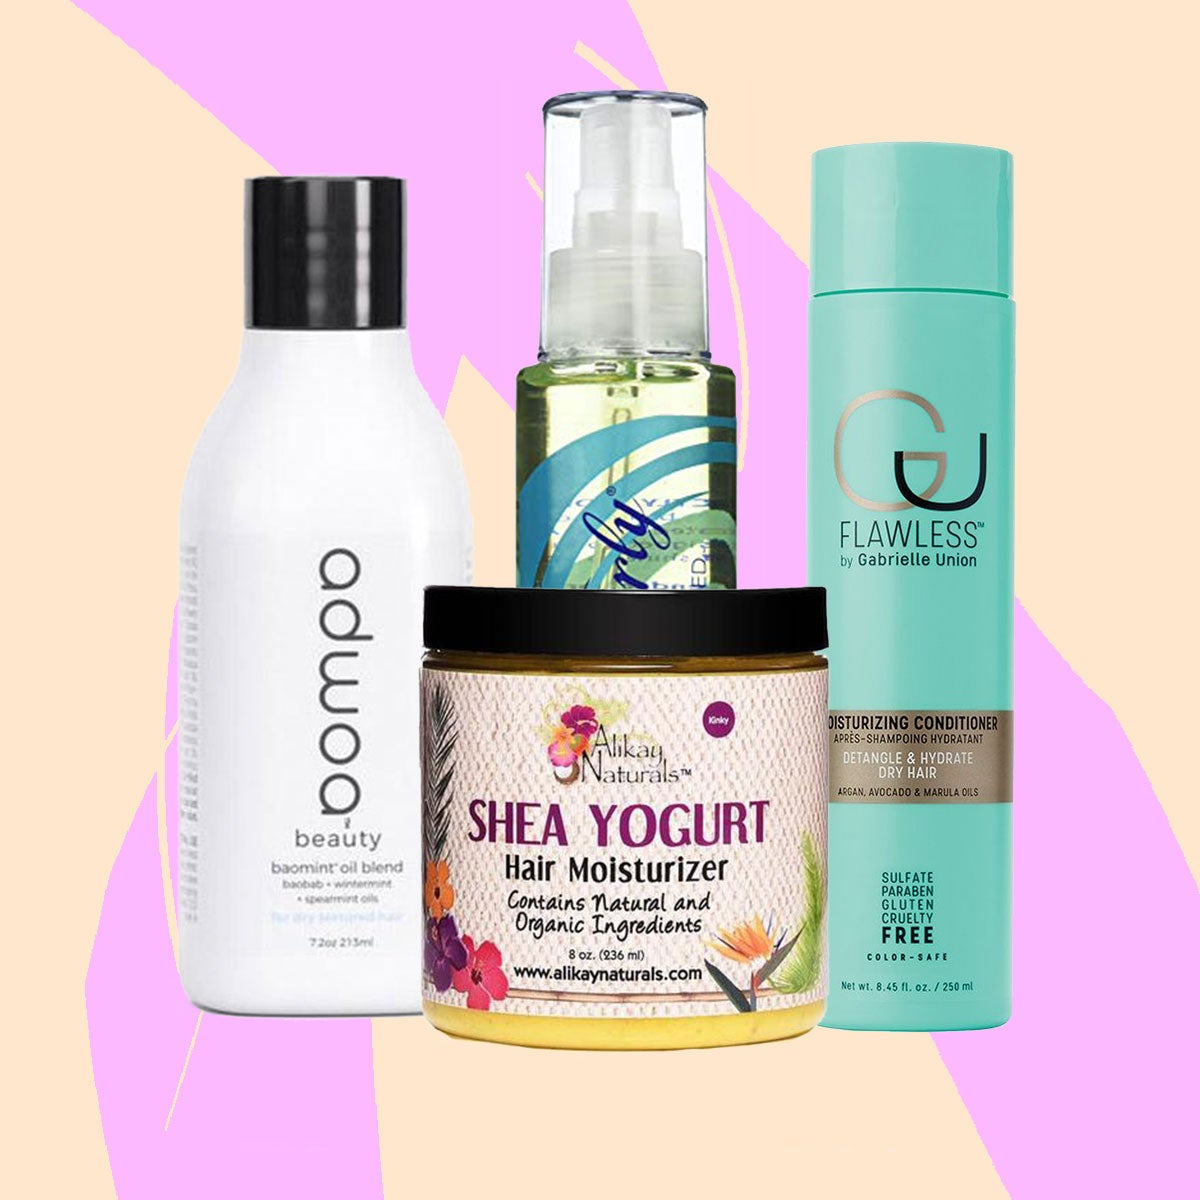 Time to Stock Up: These Moisturizers and Oils Will Save Your Hair From Frizz